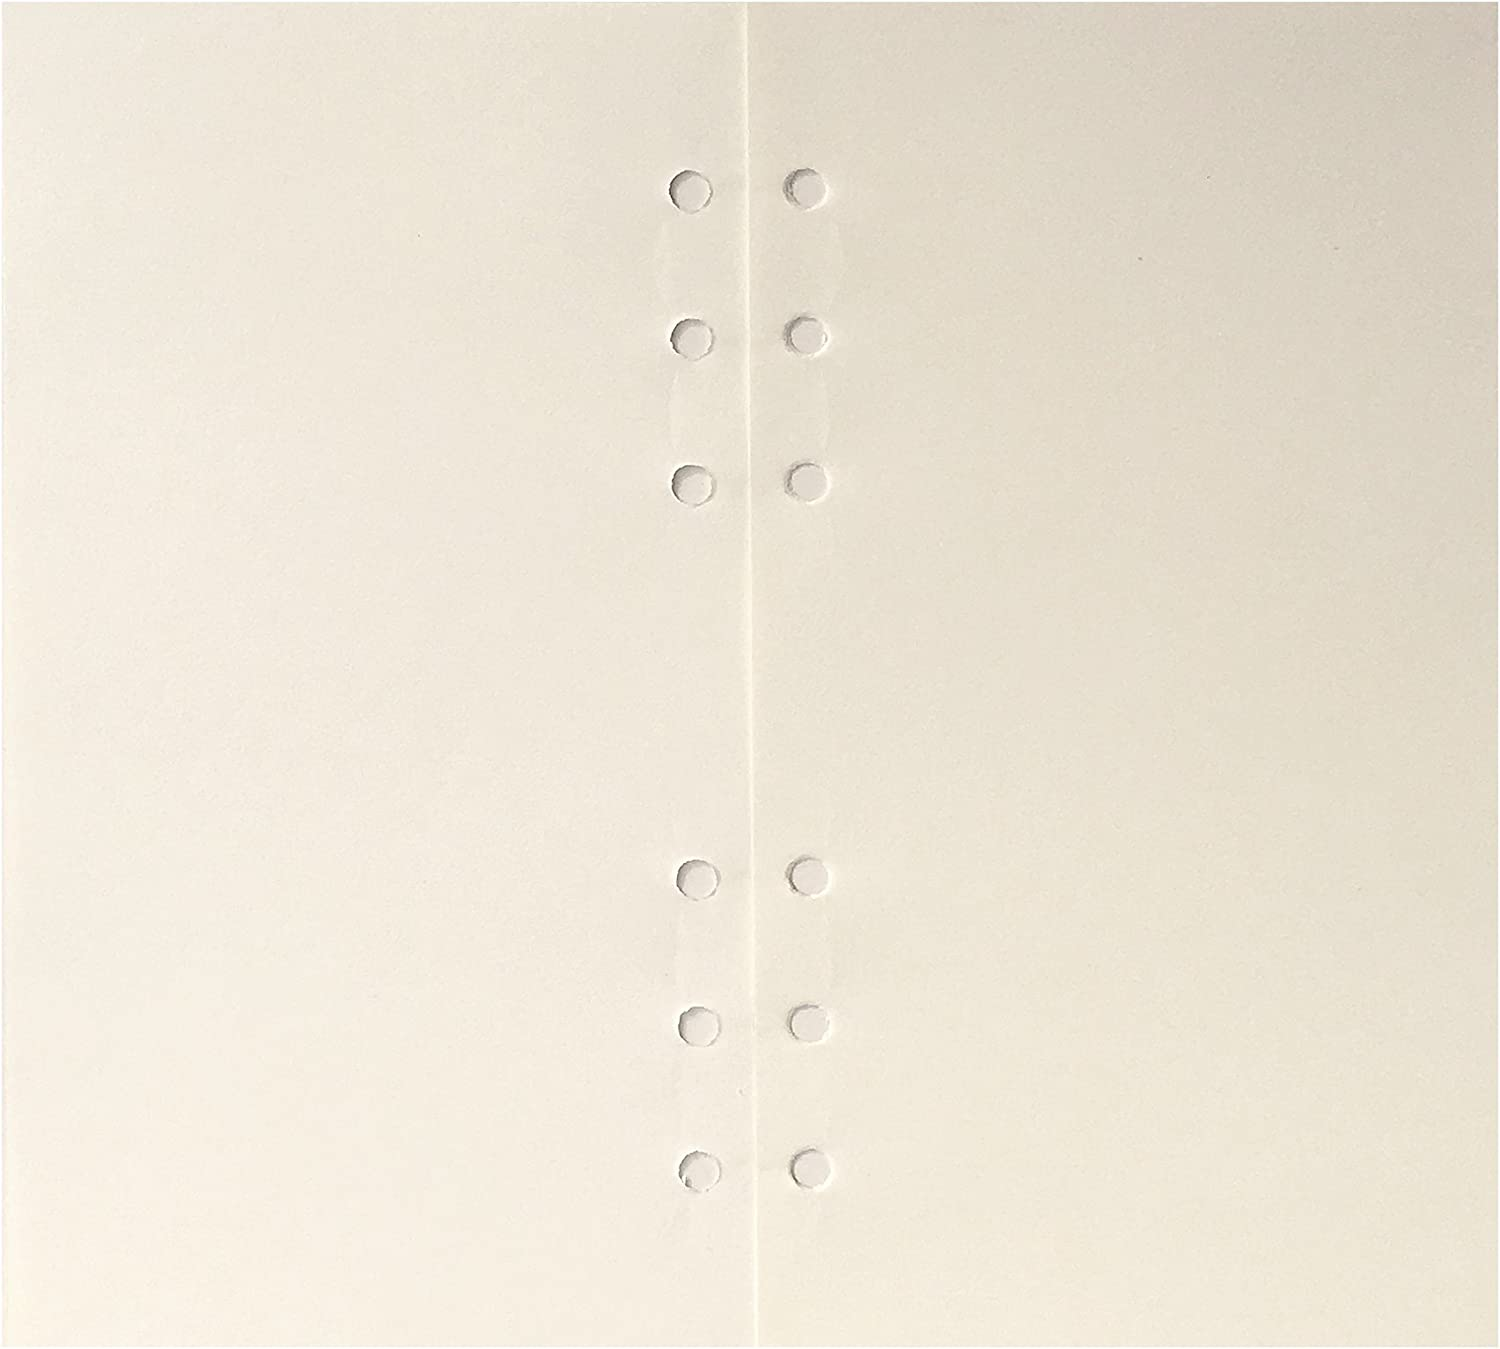 A6 6-Holes Cover Round Ring View Binder File Folder for Loose Leaf Sheet Protectors//Notebook Refill//DIY Scrapbooking//Binder Cover Protector A6 Paper Refill-Grid Graph, 1 Package